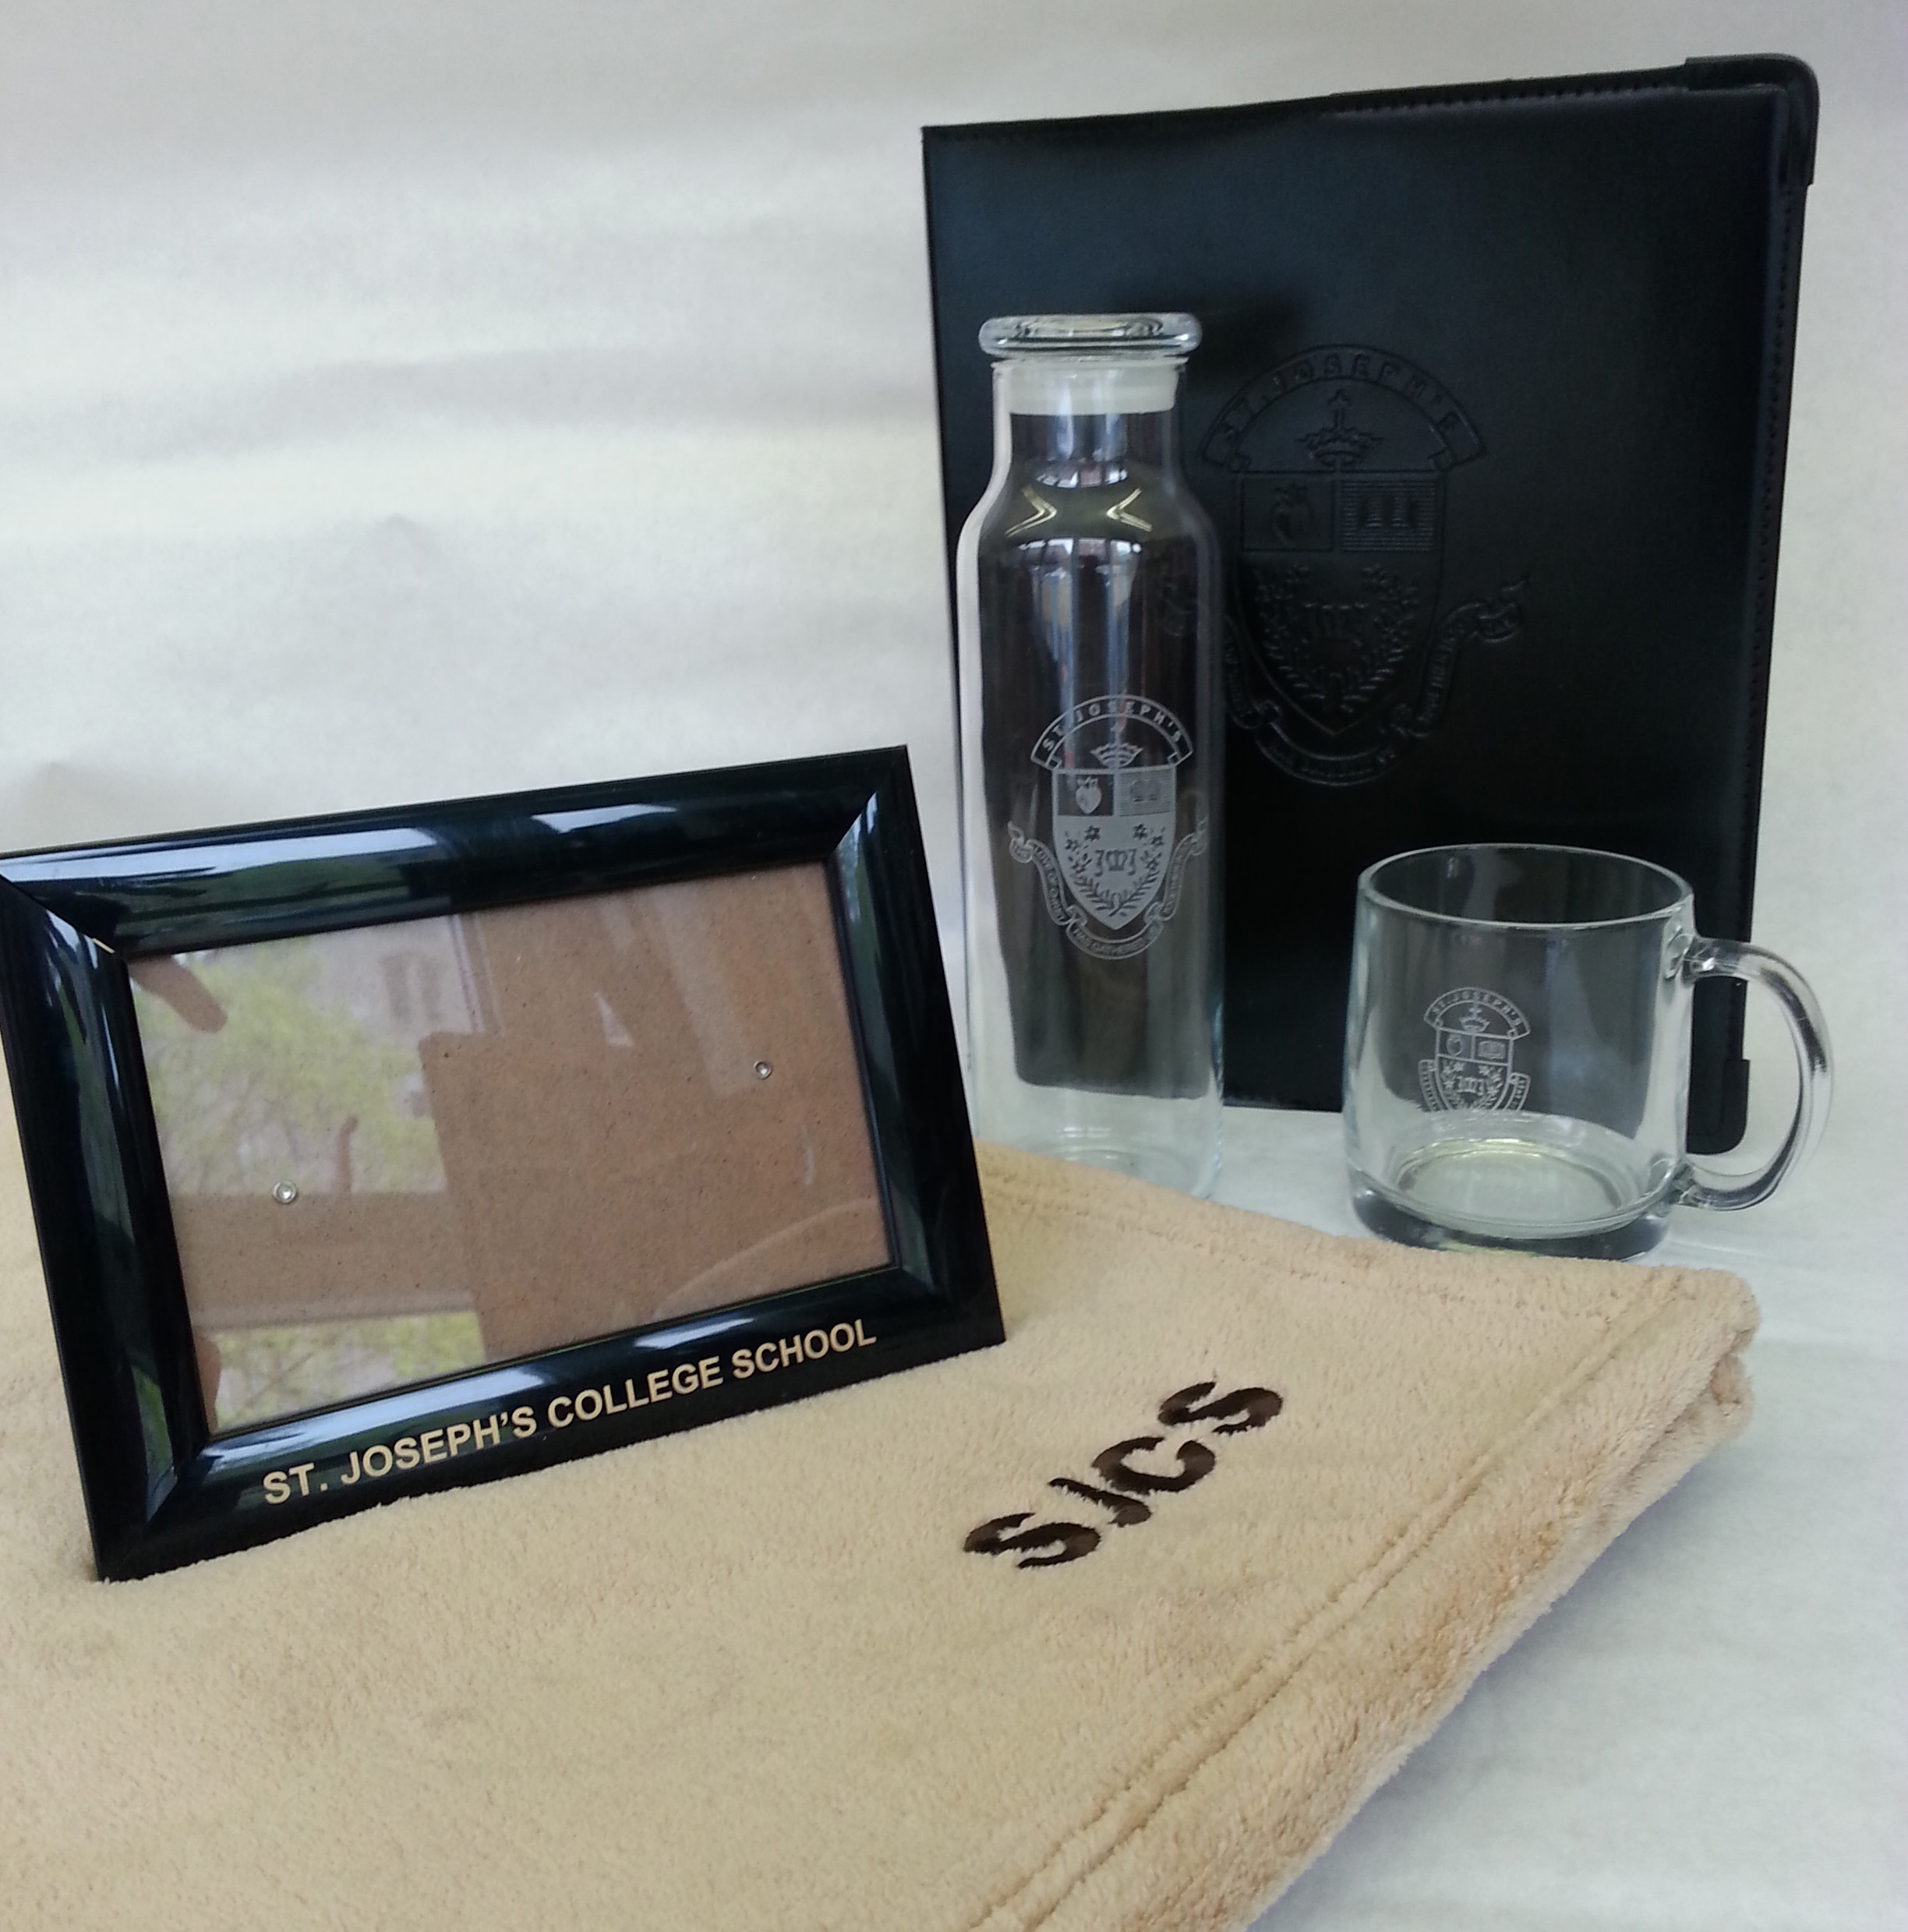 blanket glassware photo frame cropper to use.jpg